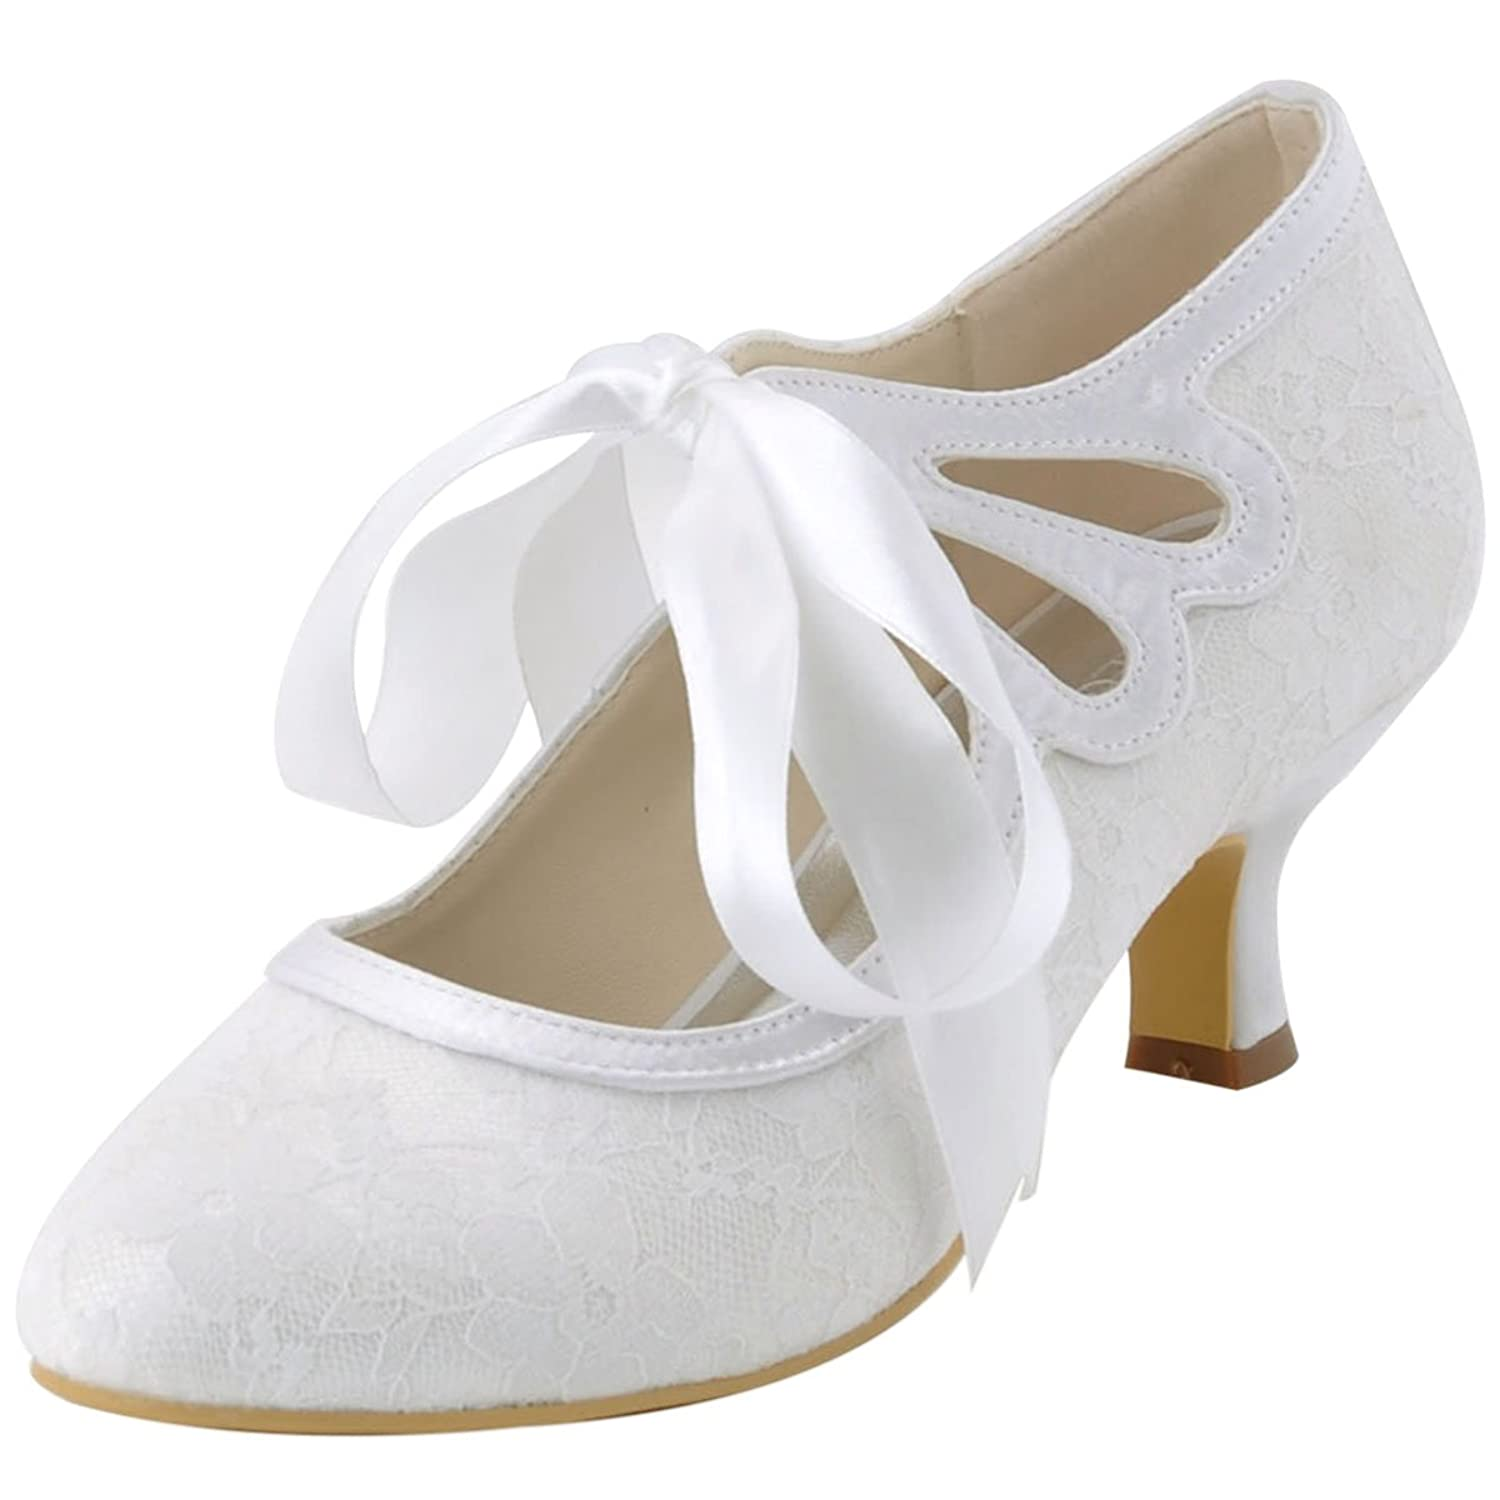 Vintage Shoes, Vintage Style Shoes ElegantPark HC1521 Womens Mary Jane Closed Toe Low Heel Pumps Lace Wedding Dress Shoes $48.95 AT vintagedancer.com